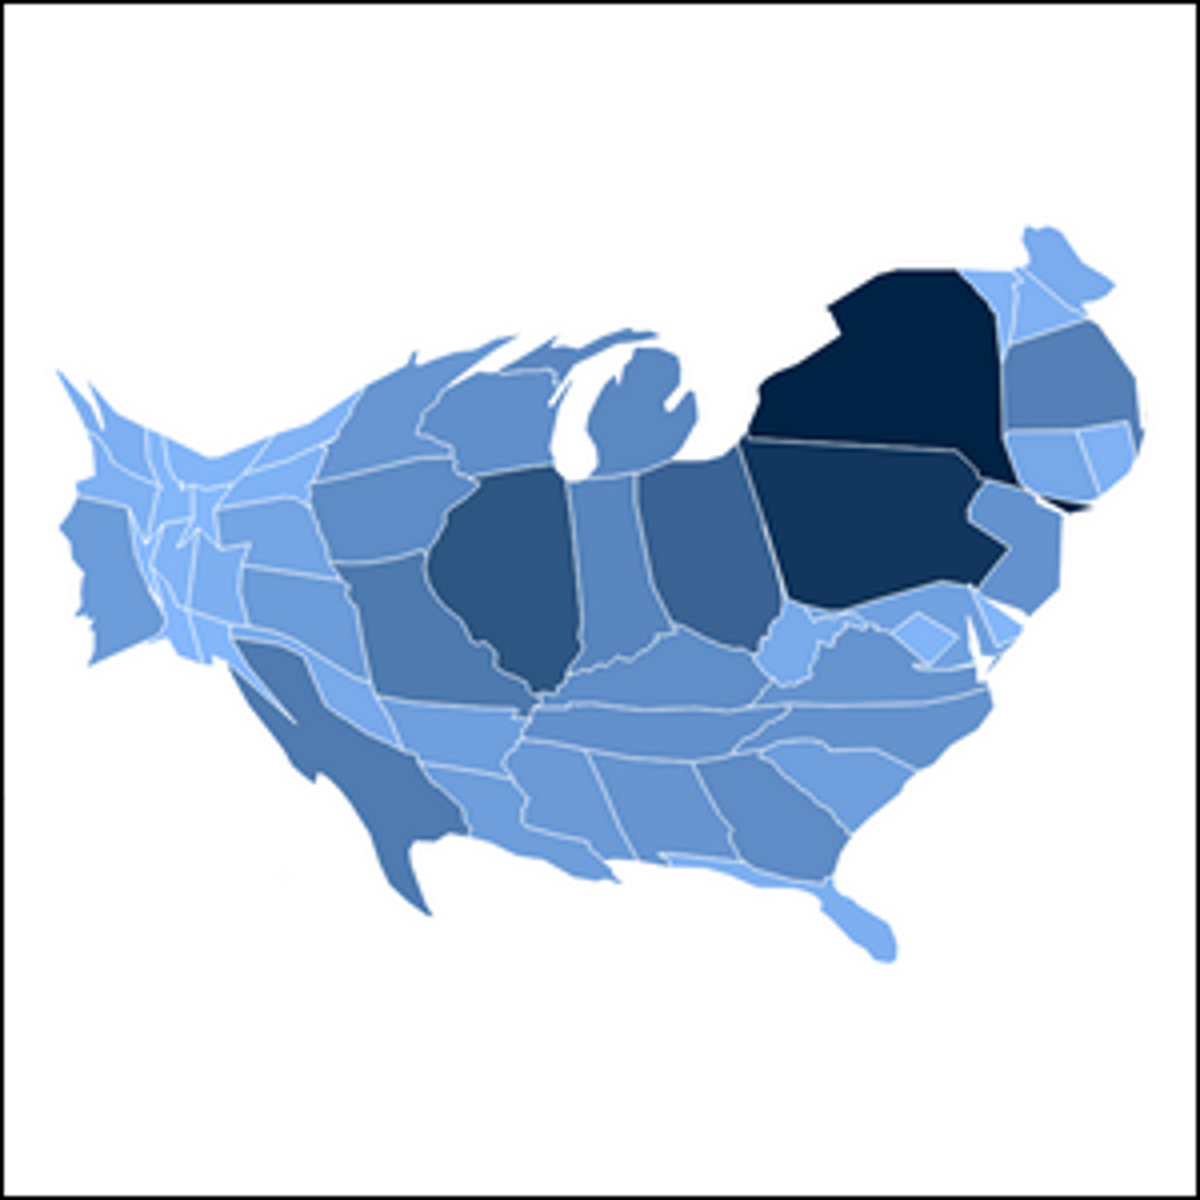 The population of the Unites States, circa 1900, presented in cartographic form.